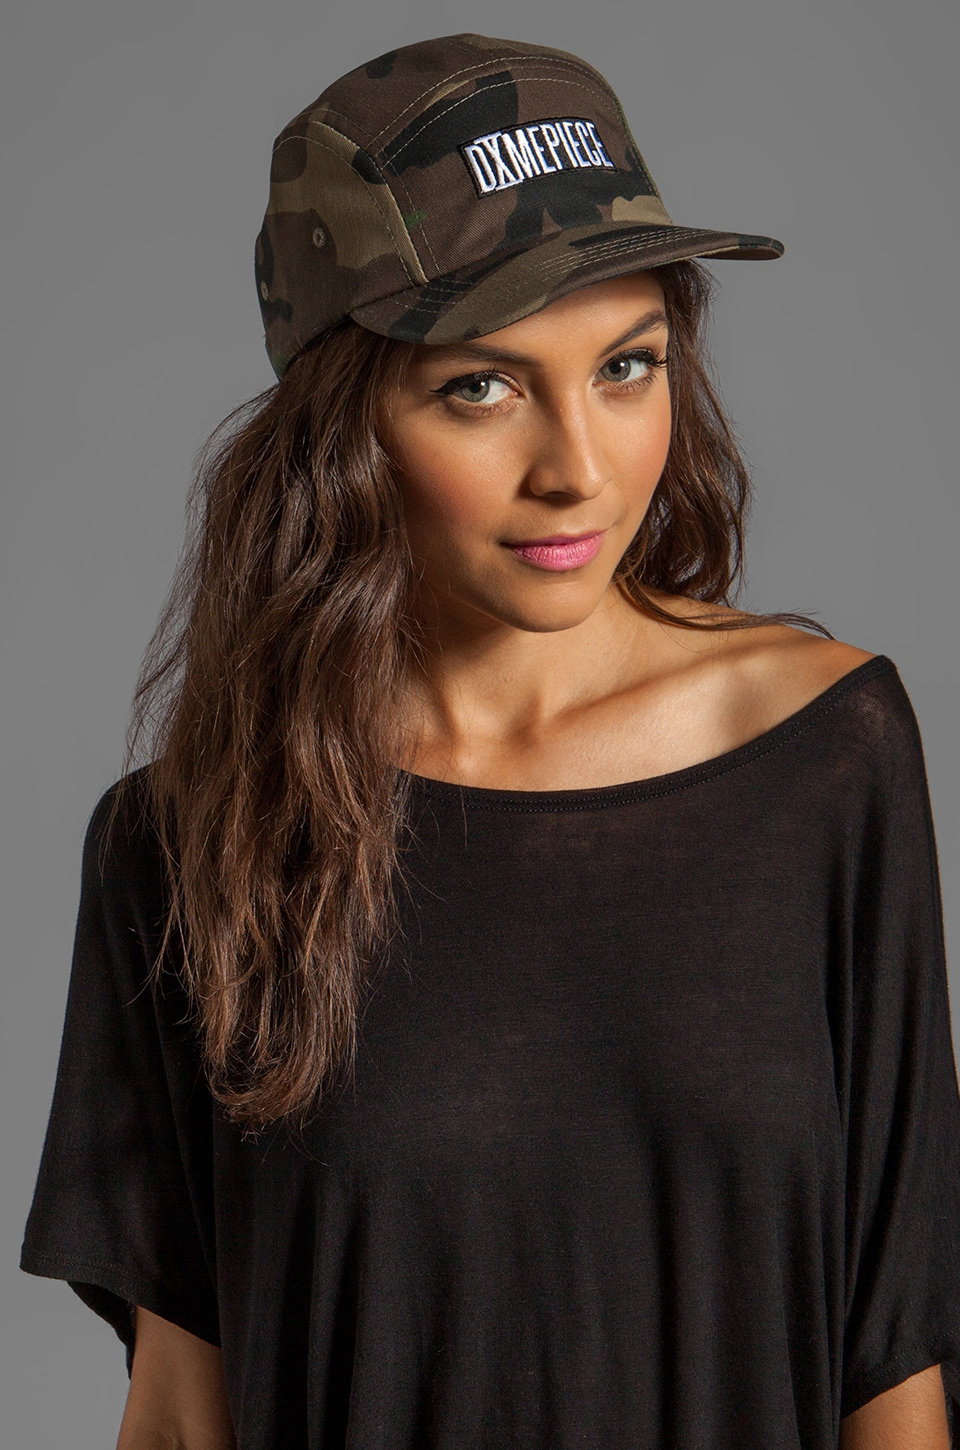 Dimepiece 5 Panel Cap in Camo